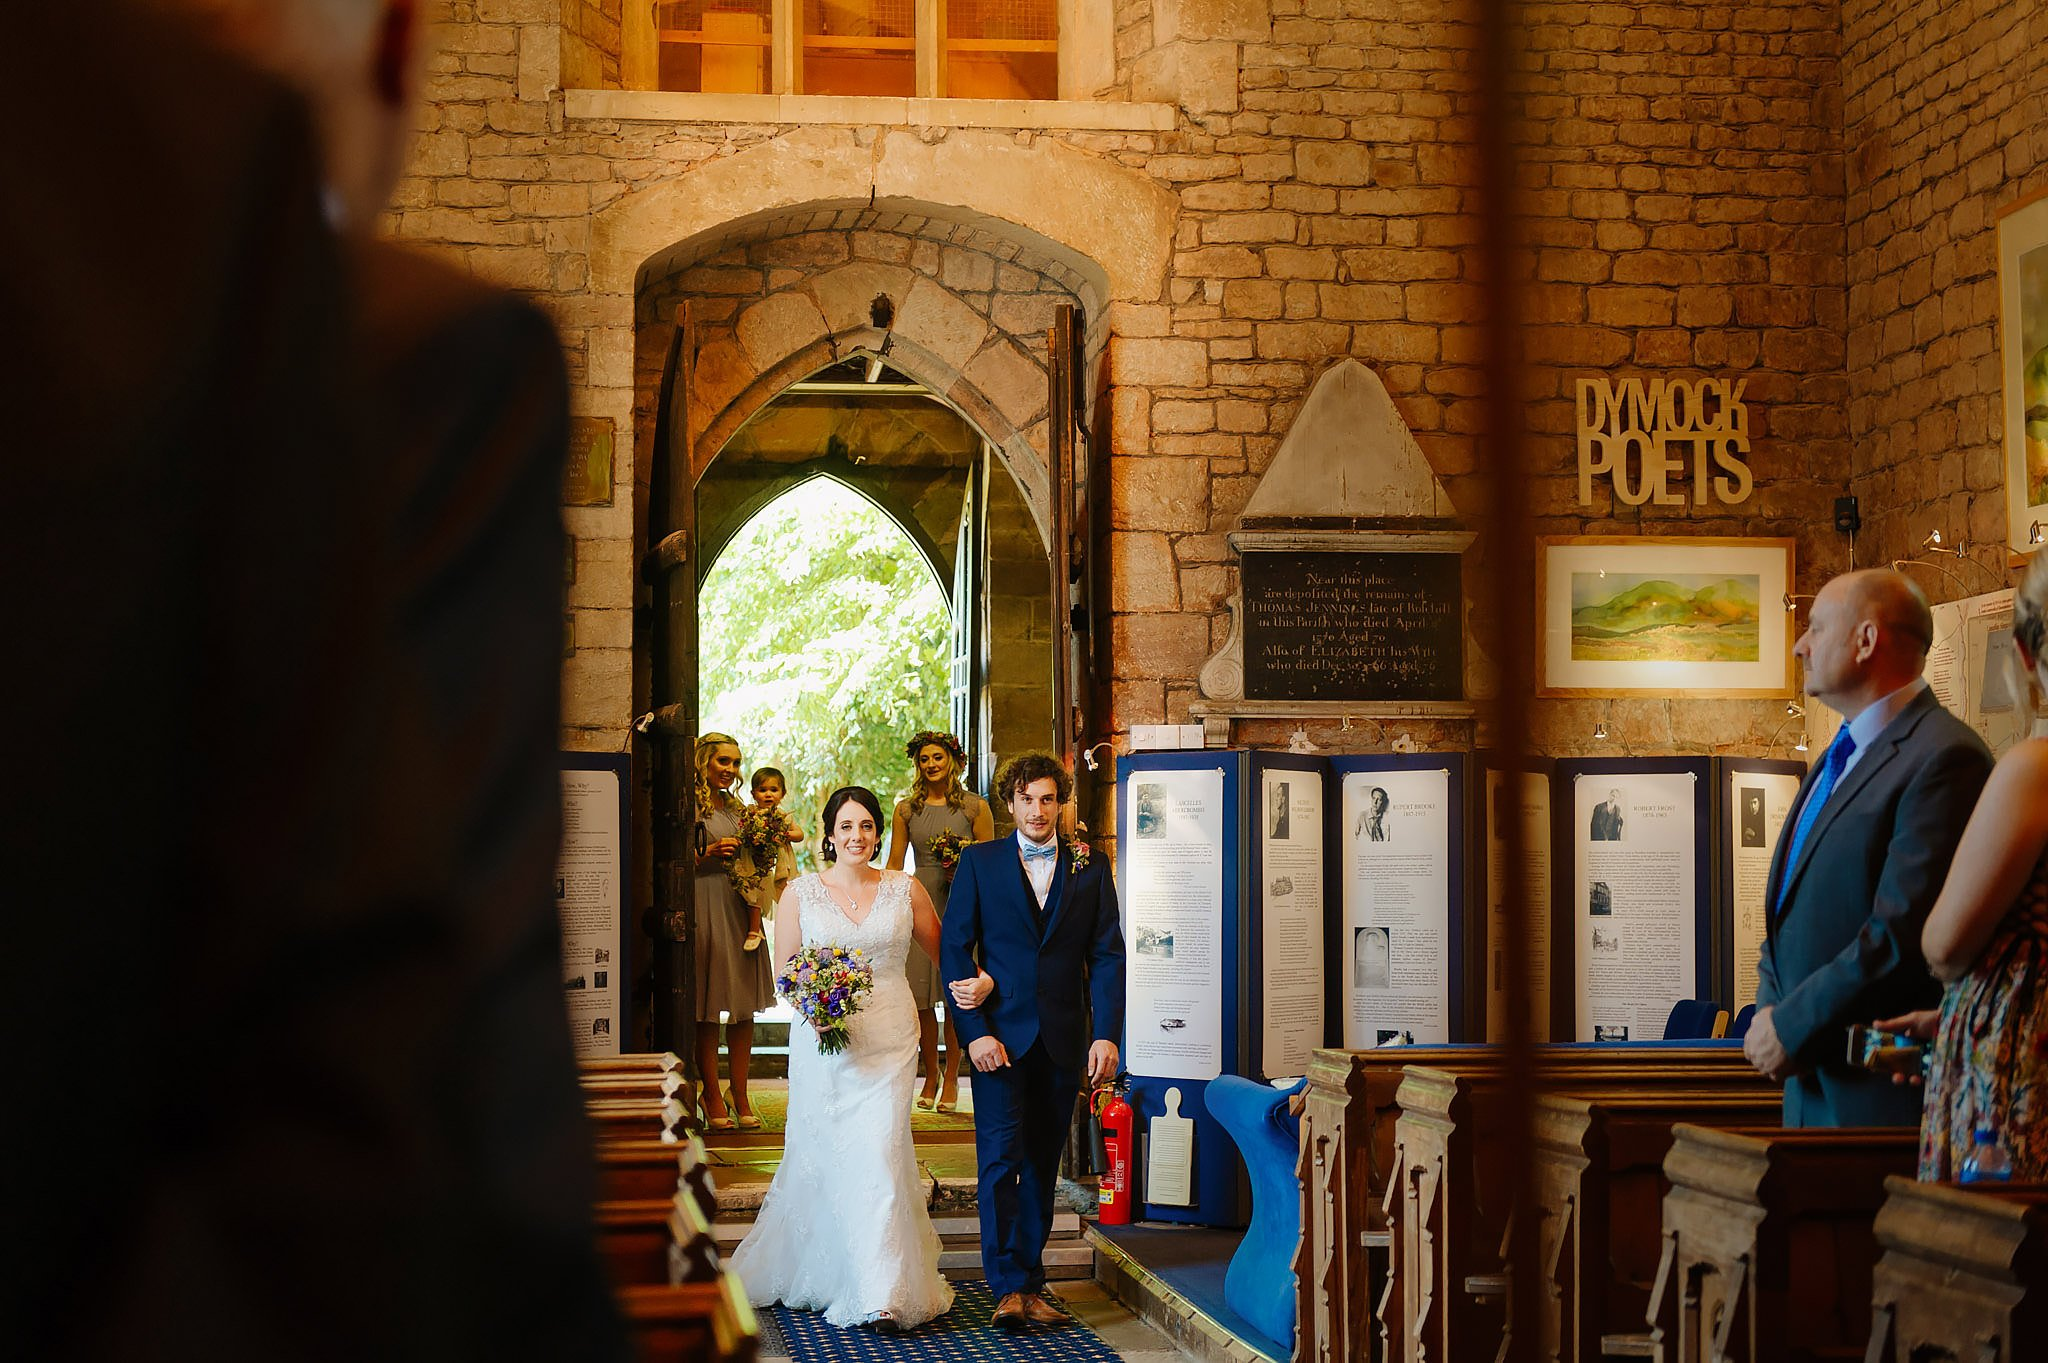 Wedding photography at Hellens Manor in Herefordshire, West Midlands | Shelley + Ian 27